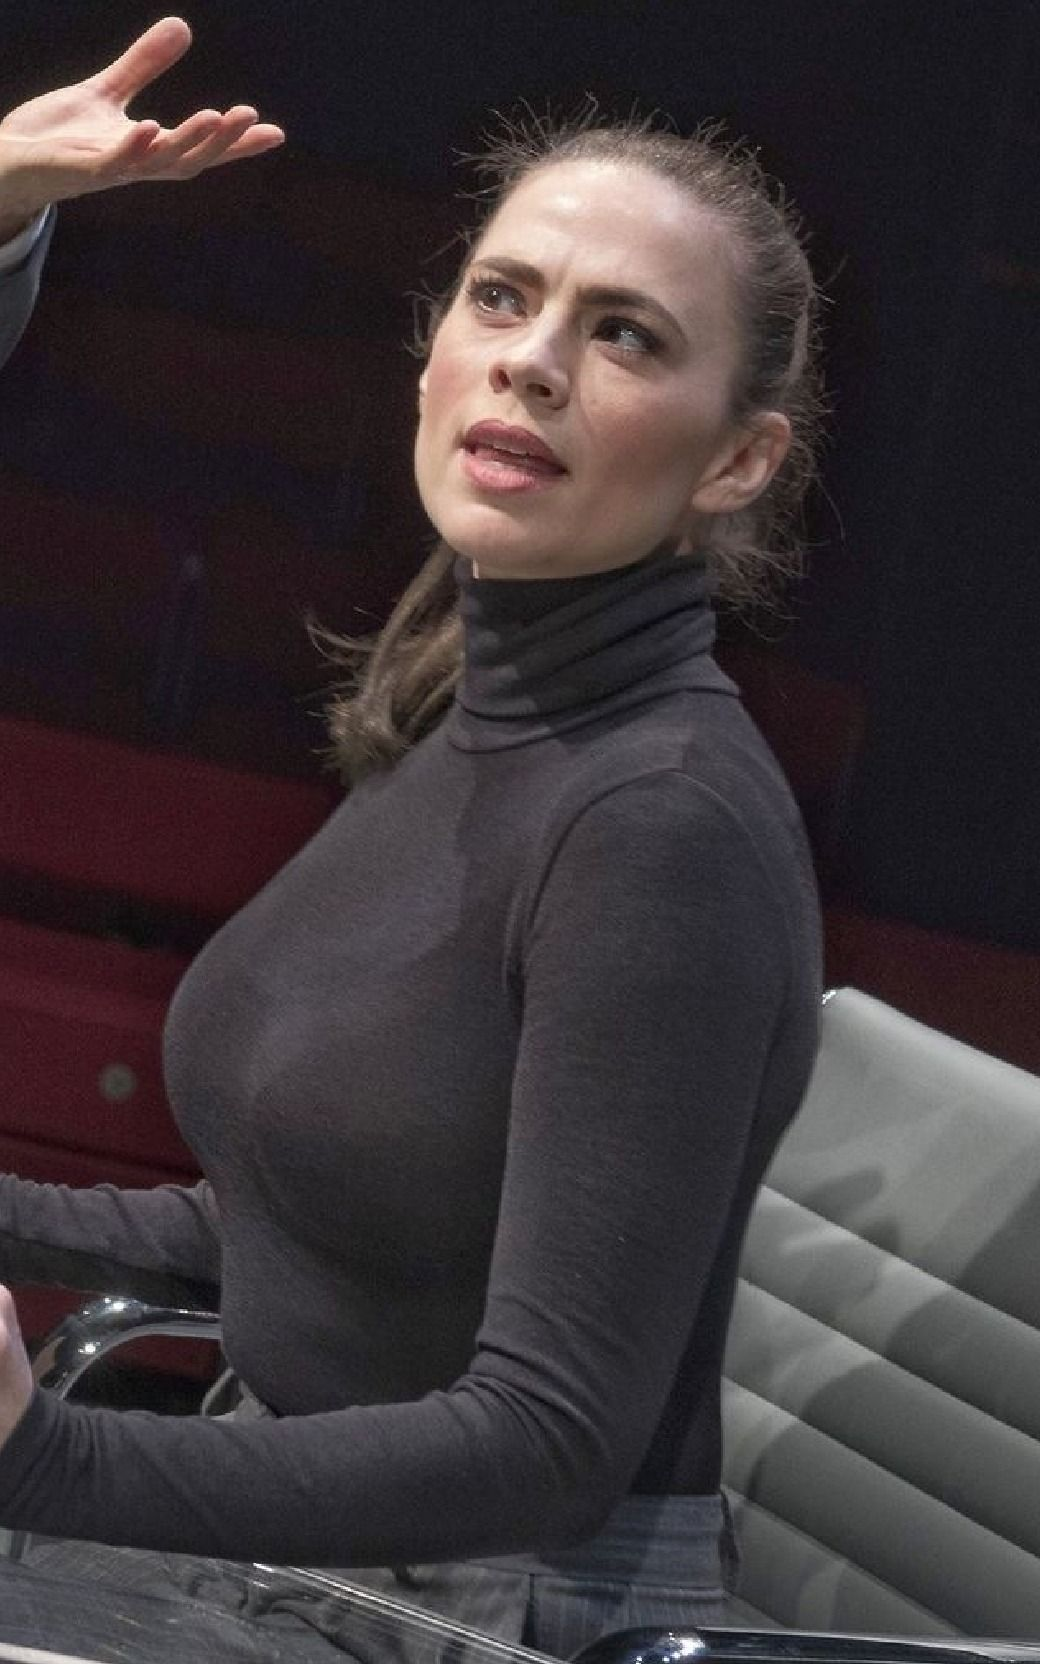 Celebrities Being Hot Hayley Atwell In 2020 Hayley Atwell Actress Hayley Atwell Hayley Attwell Not the real hayley atwell.i wish. celebrities being hot hayley atwell